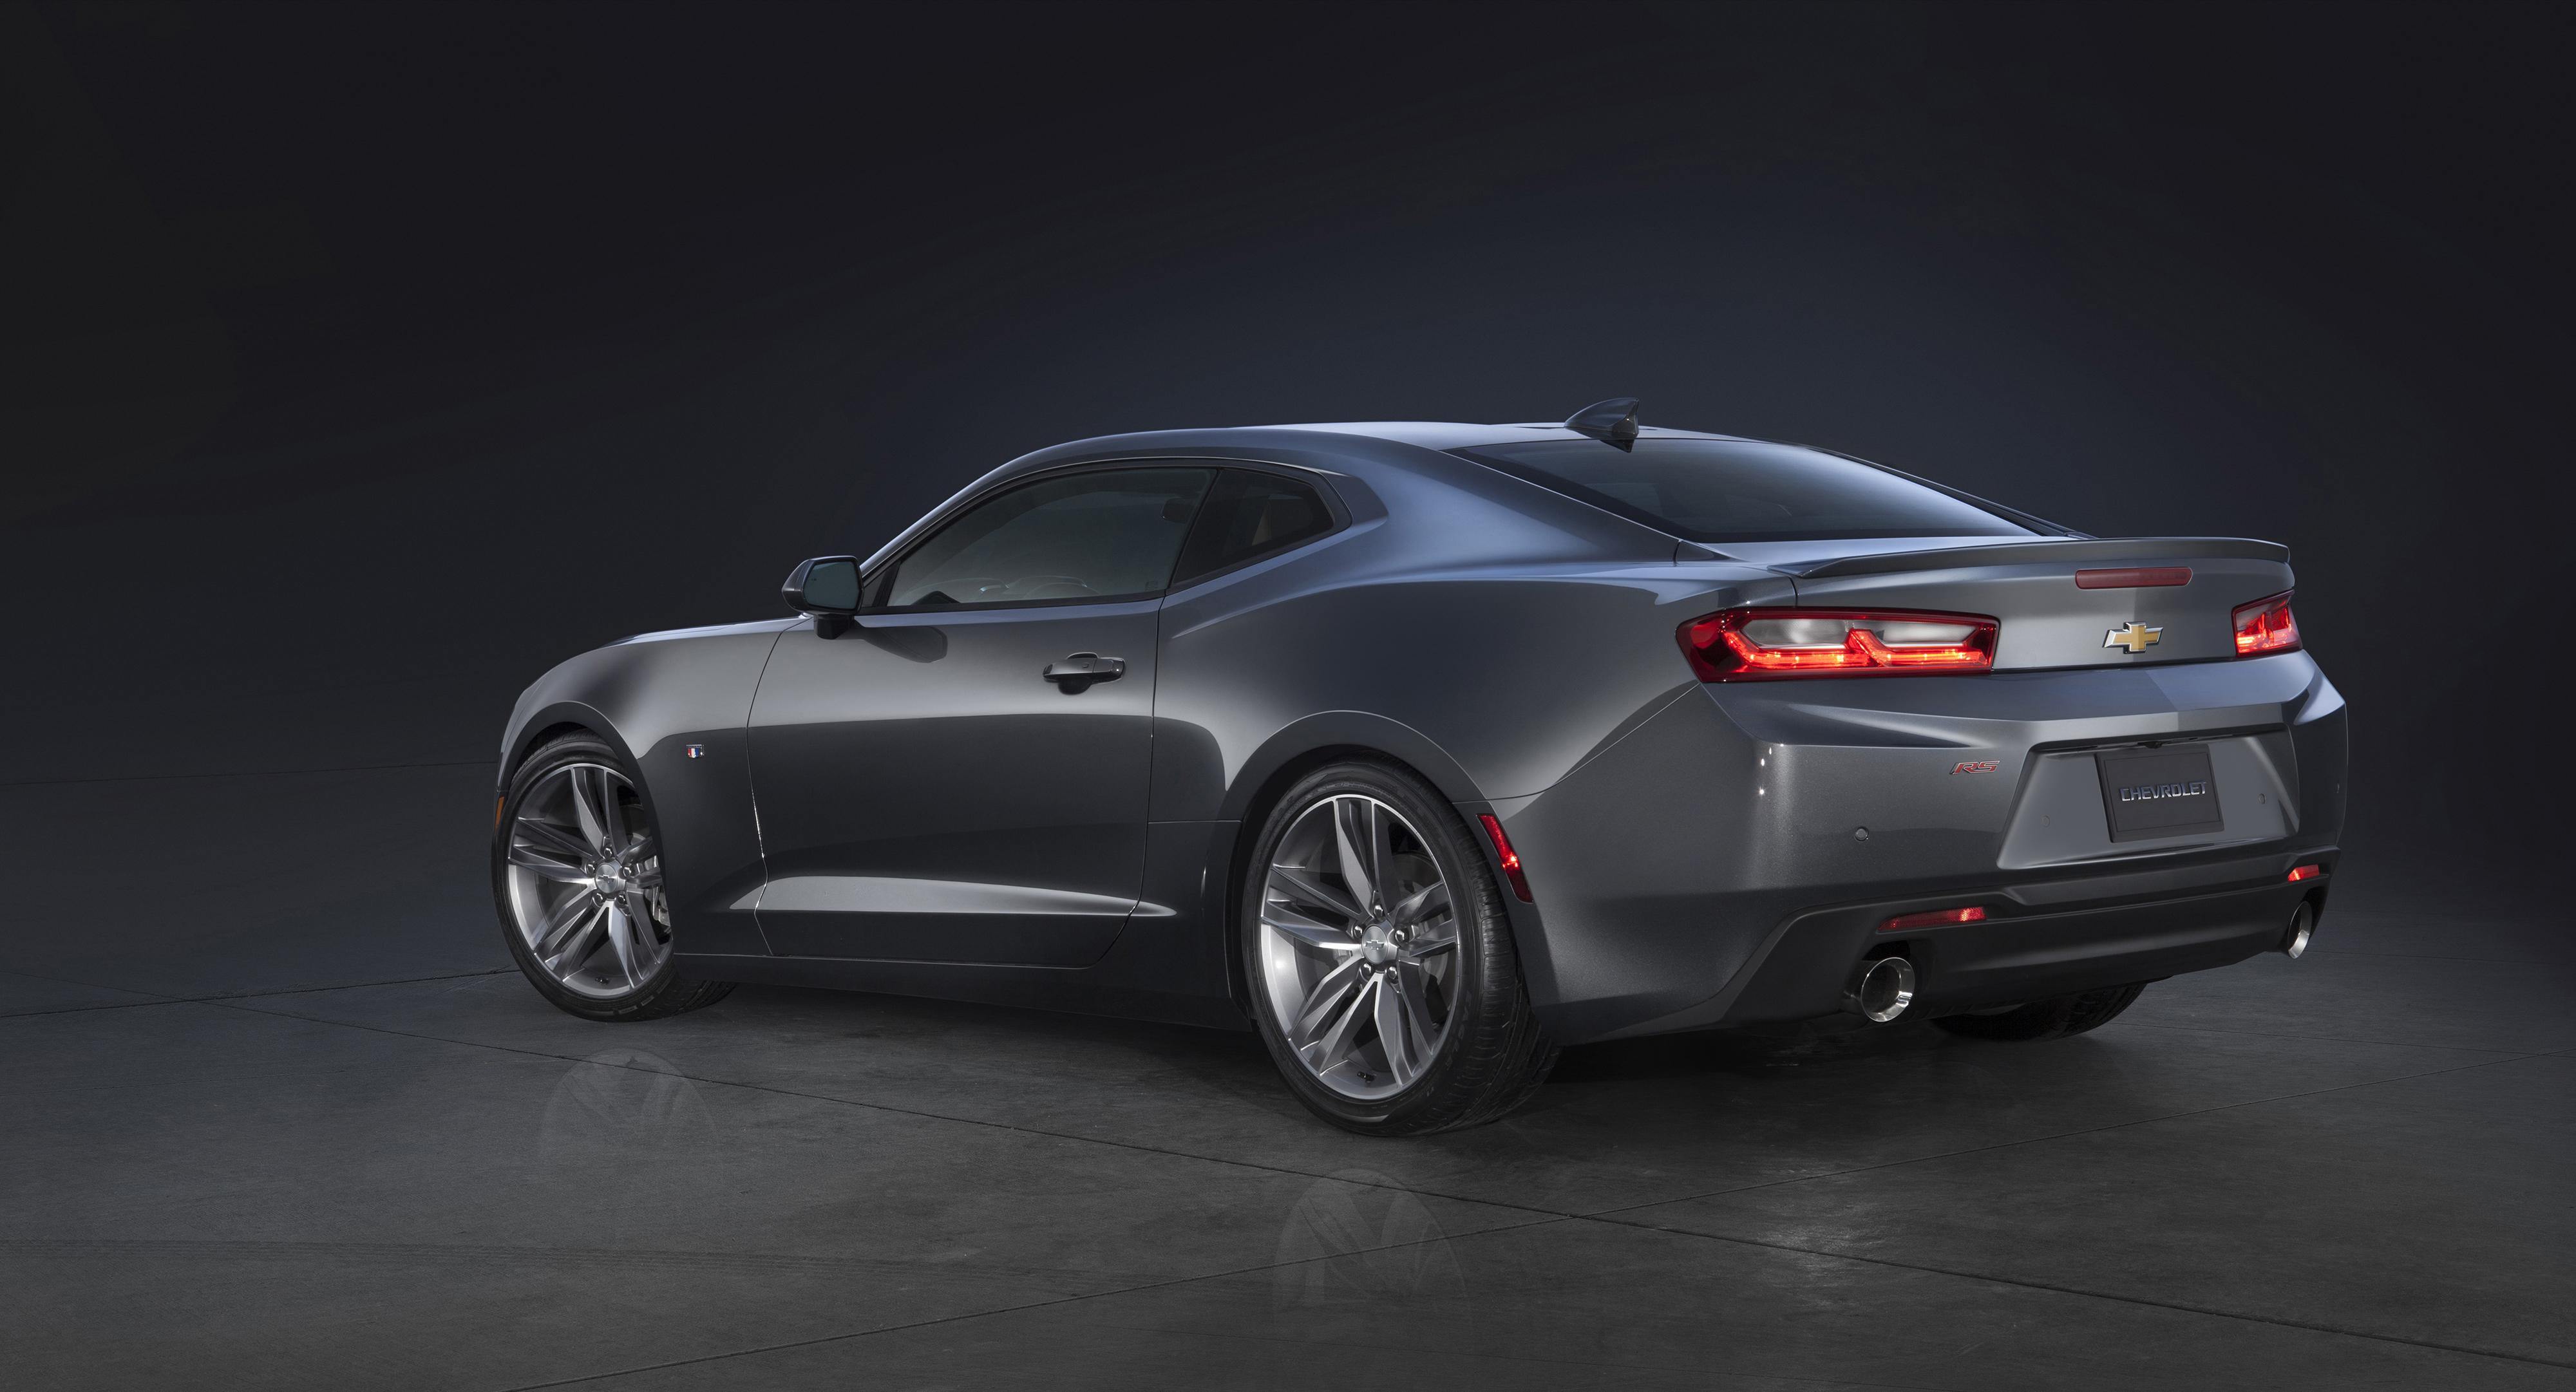 2016 Chevrolet Camaro: GM Says The Sixth-Generation Camaro Has Been Completely Overhauled, With More Muscle Than The Ford Mustang